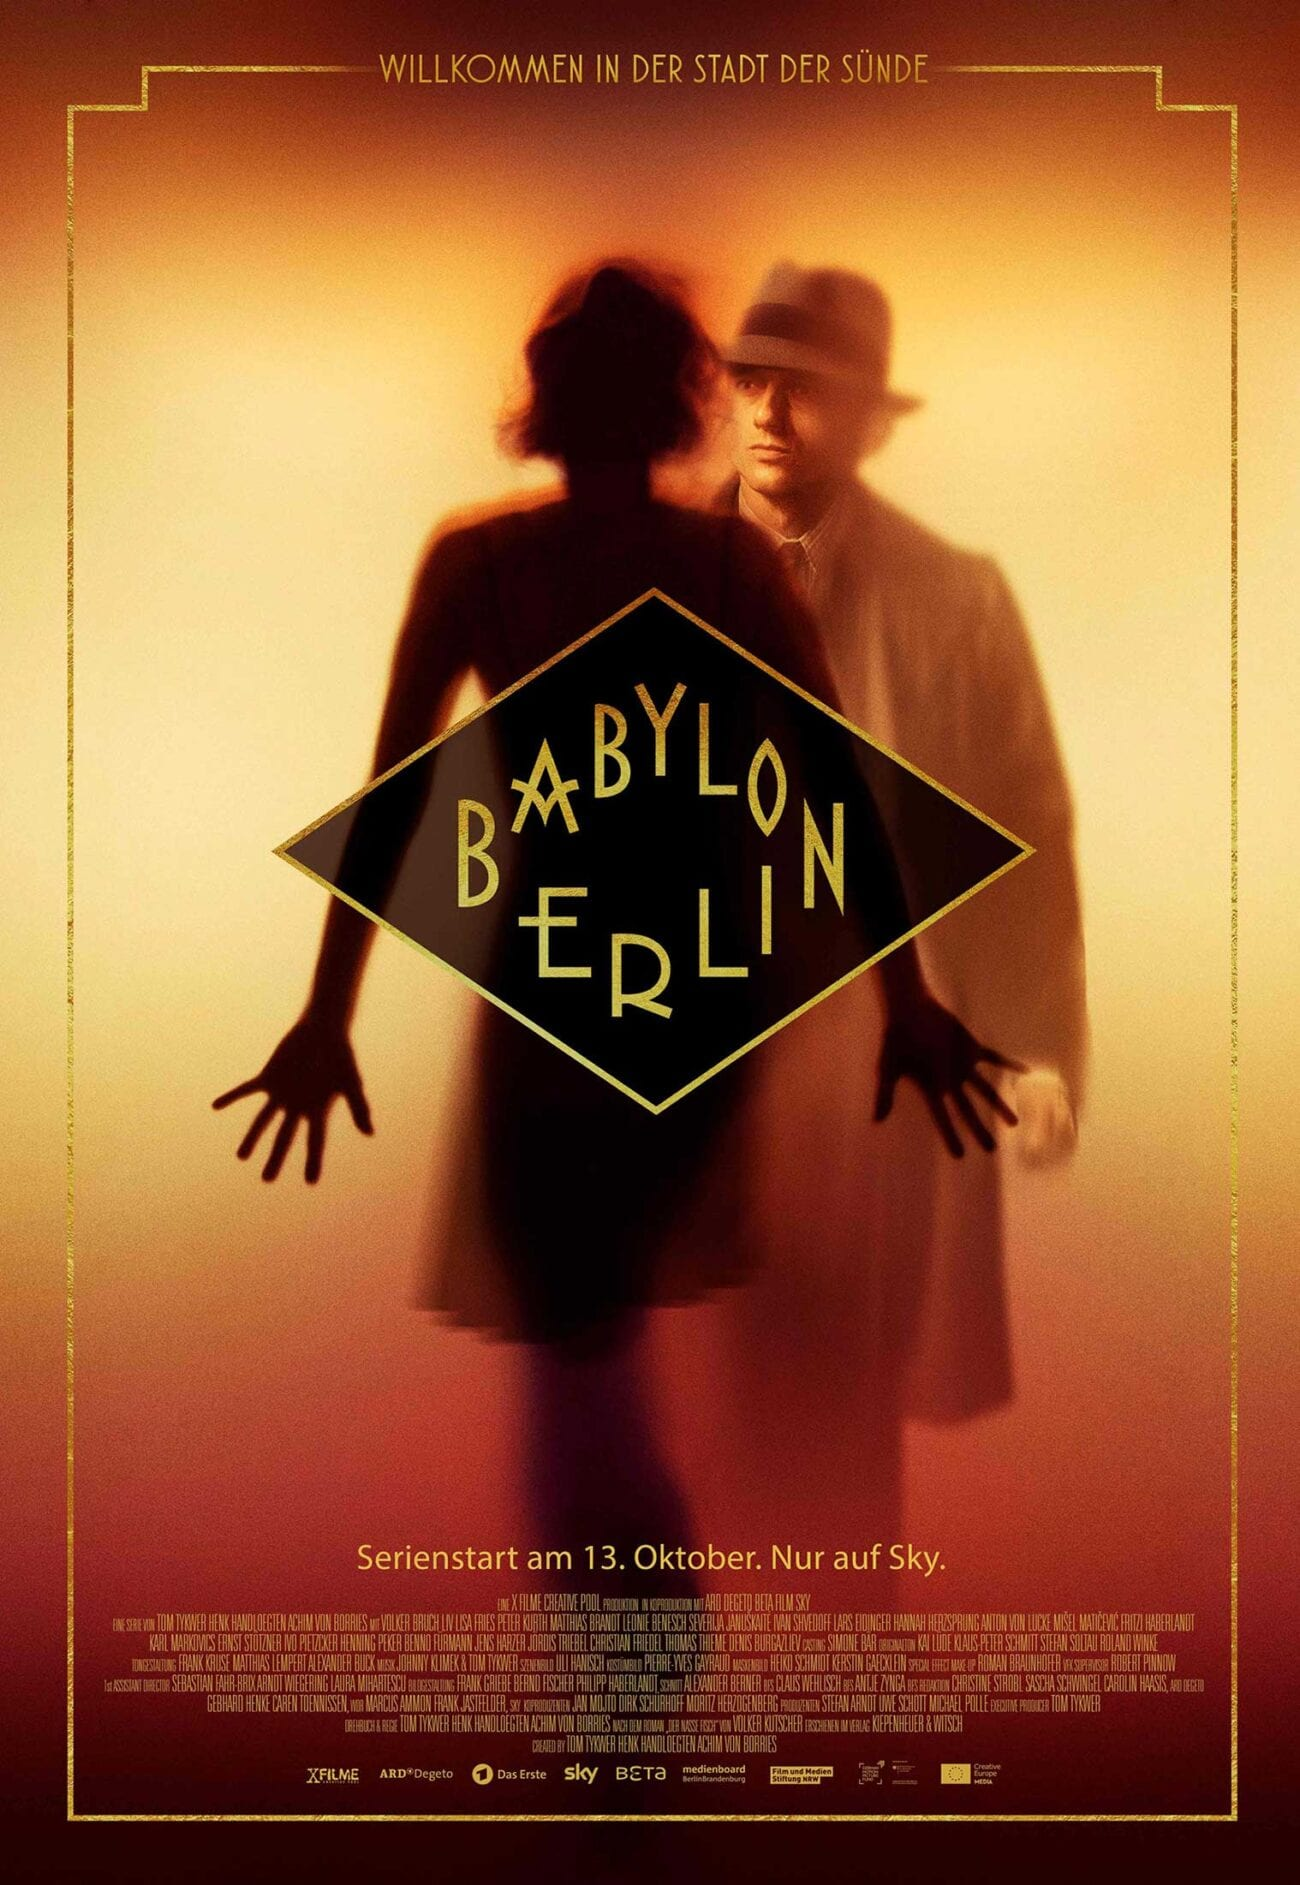 'Babylon Berlin' is a thrilling crime drama set in 1920s Germany. Here's everything you need to know about the noir drama on Netflix.